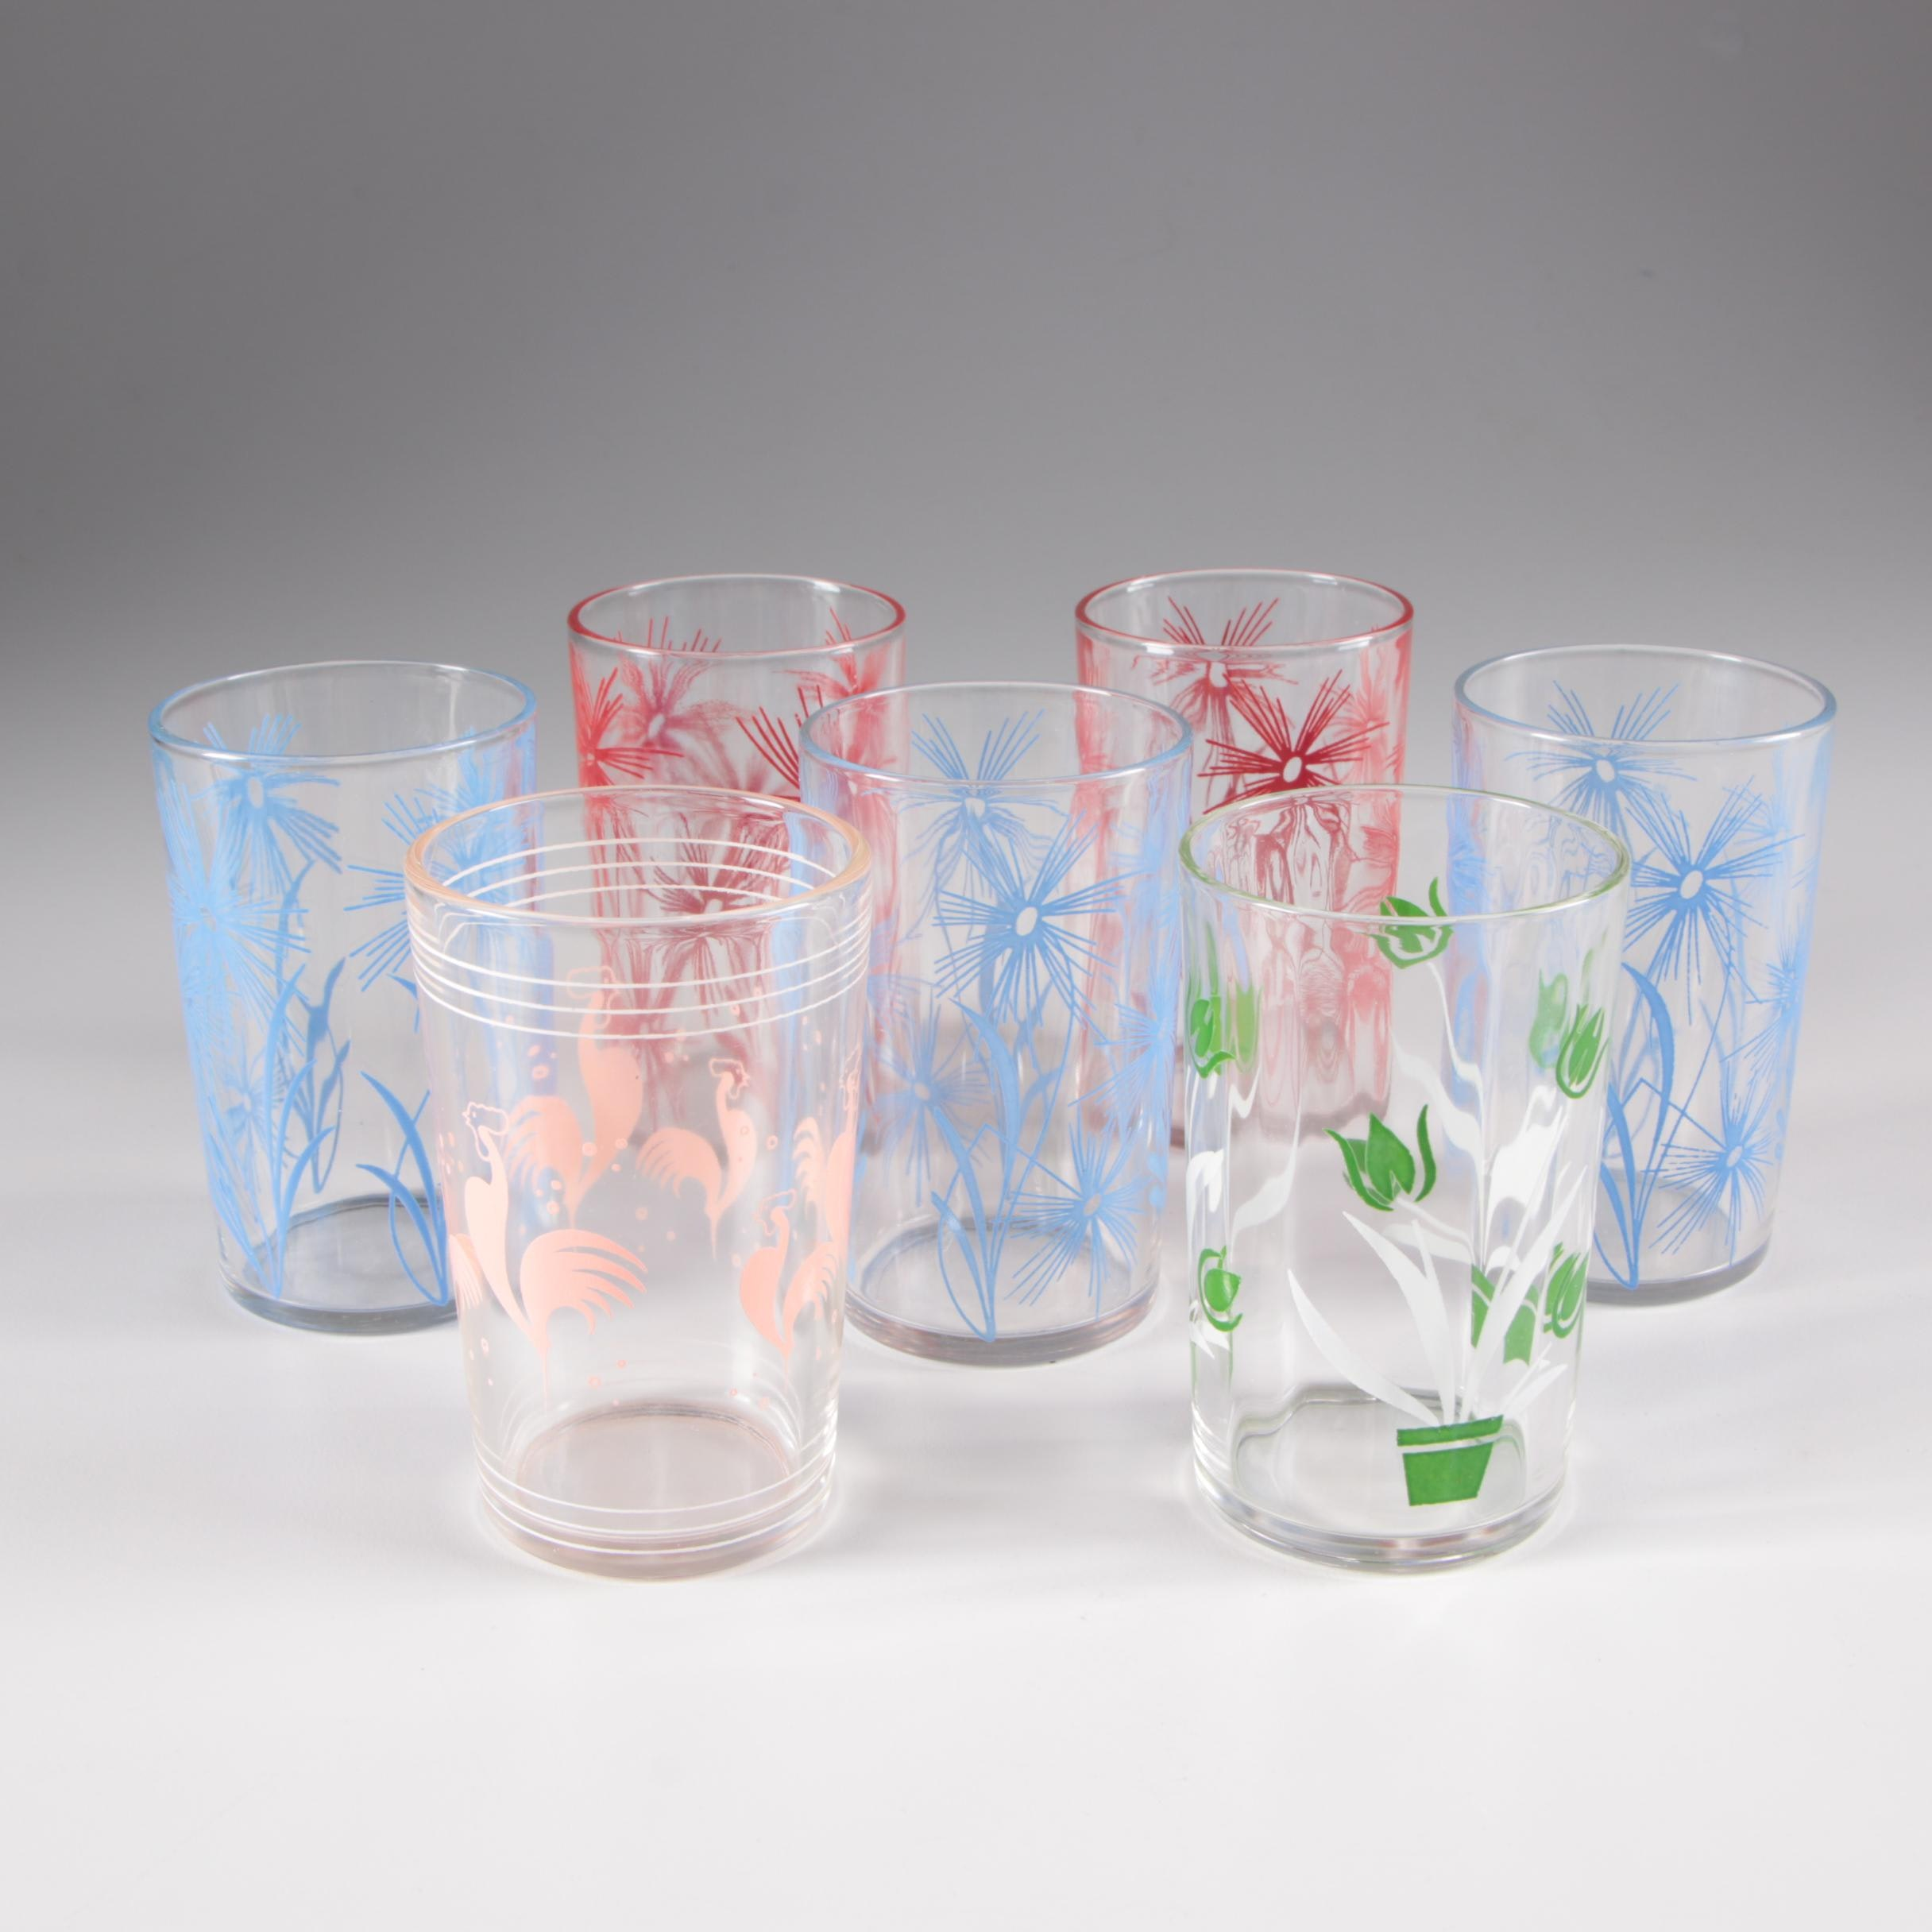 Juice Glasses with Colorful Flower and Rooster Decoration, Vintage